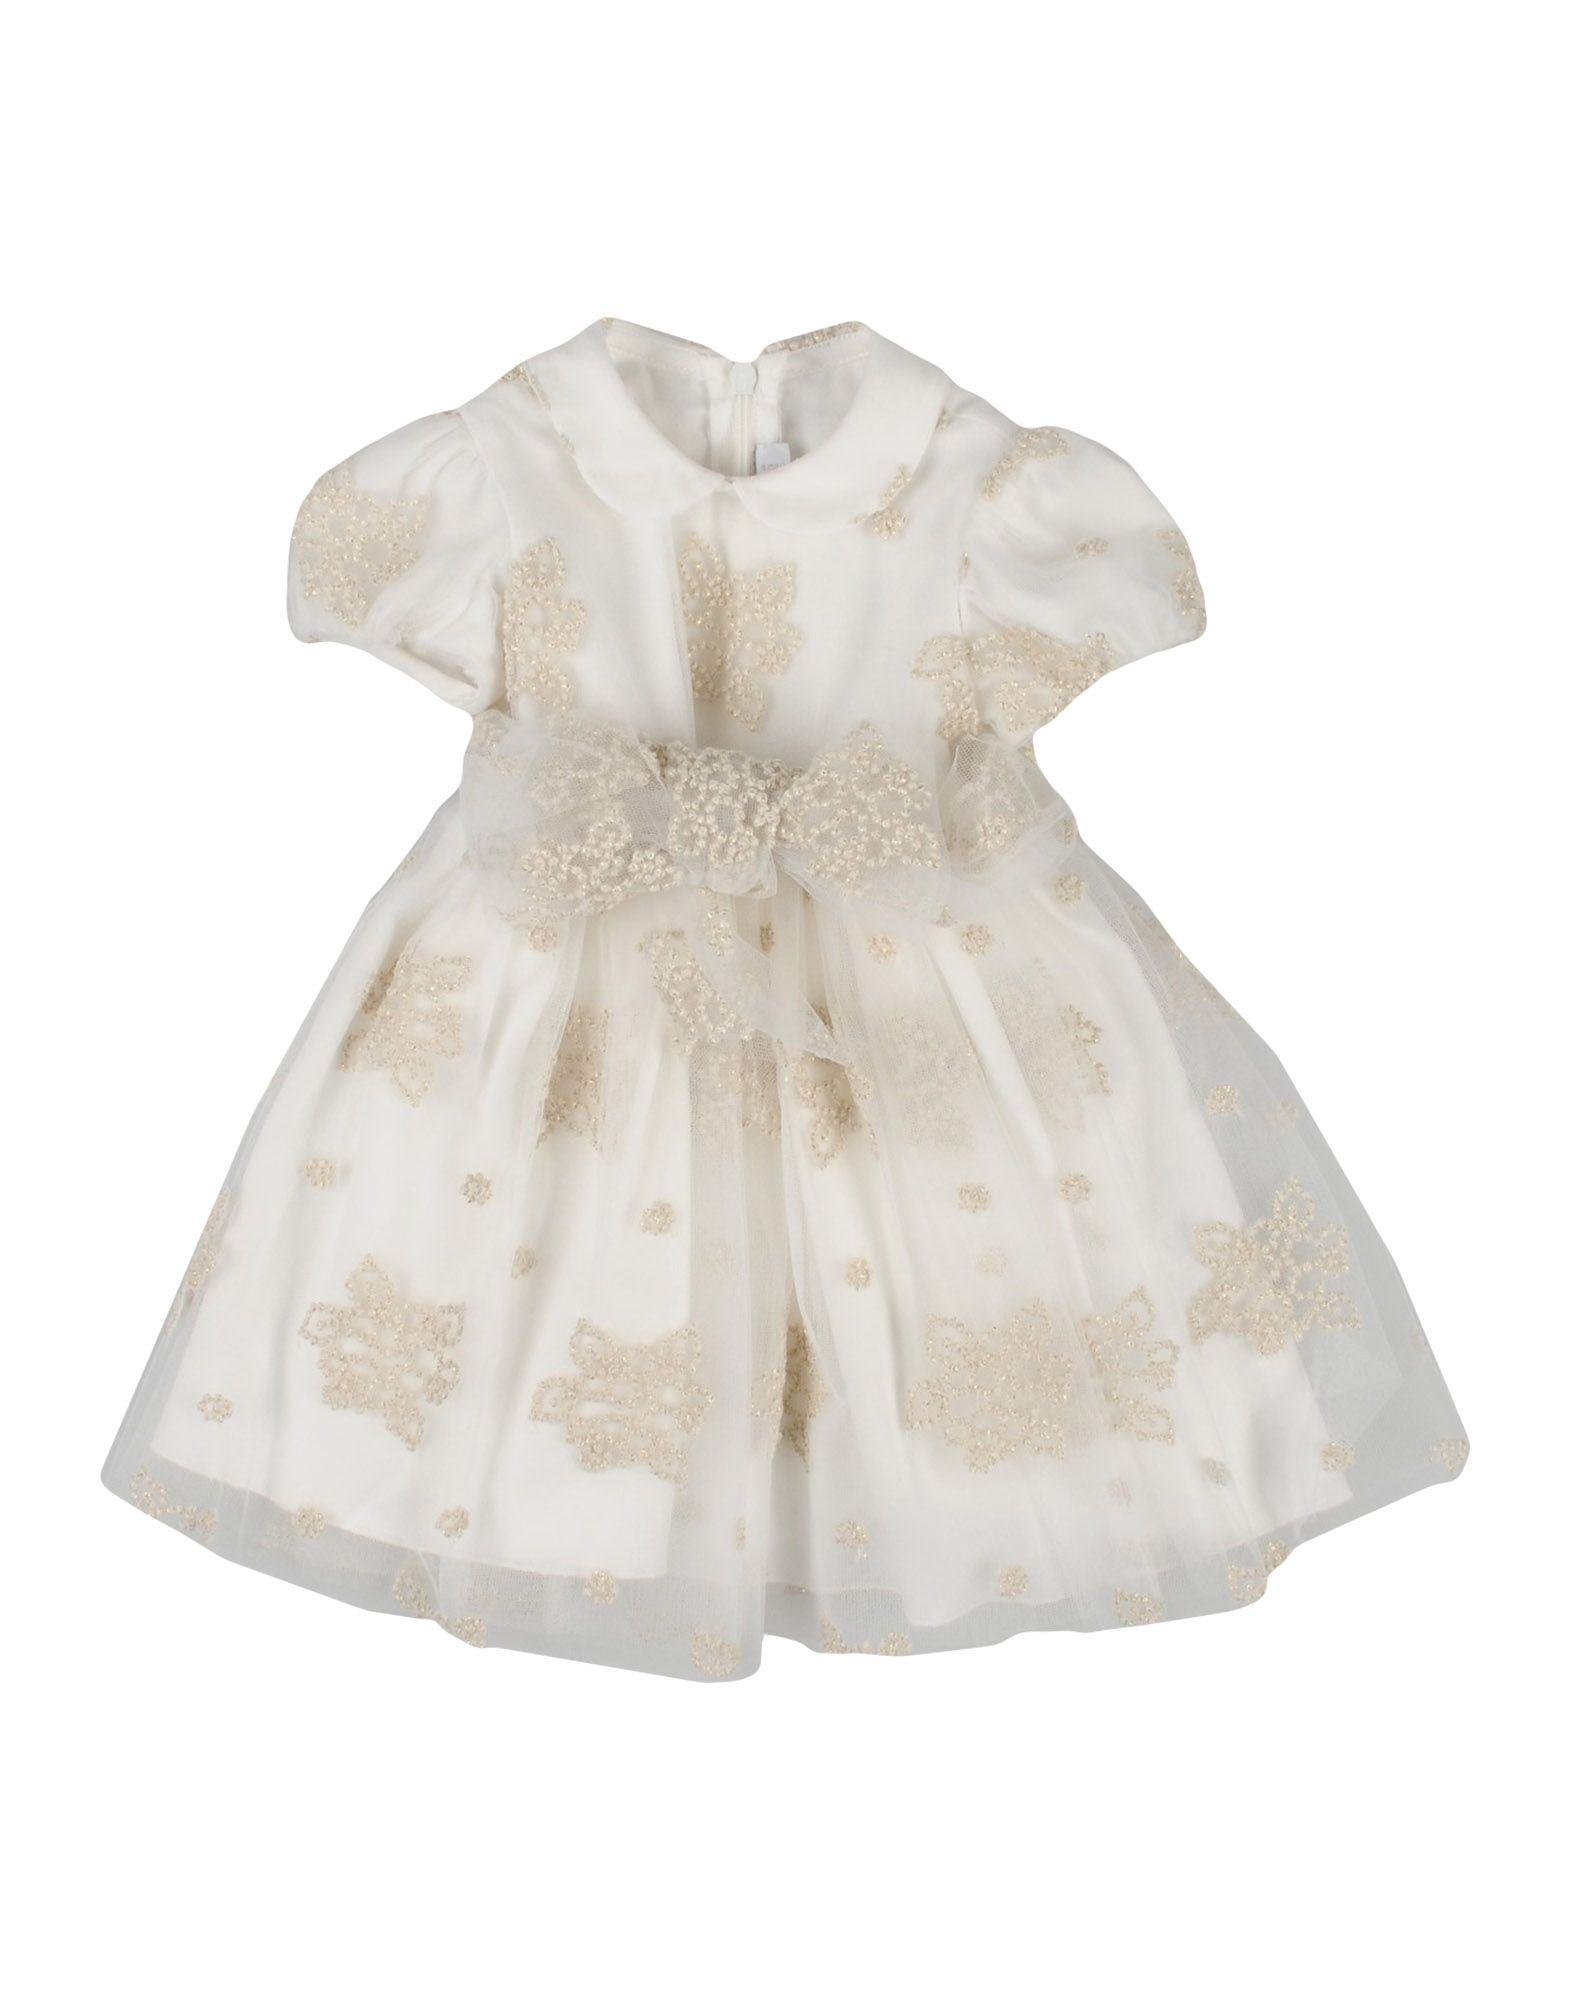 IL GUFO Dress in White